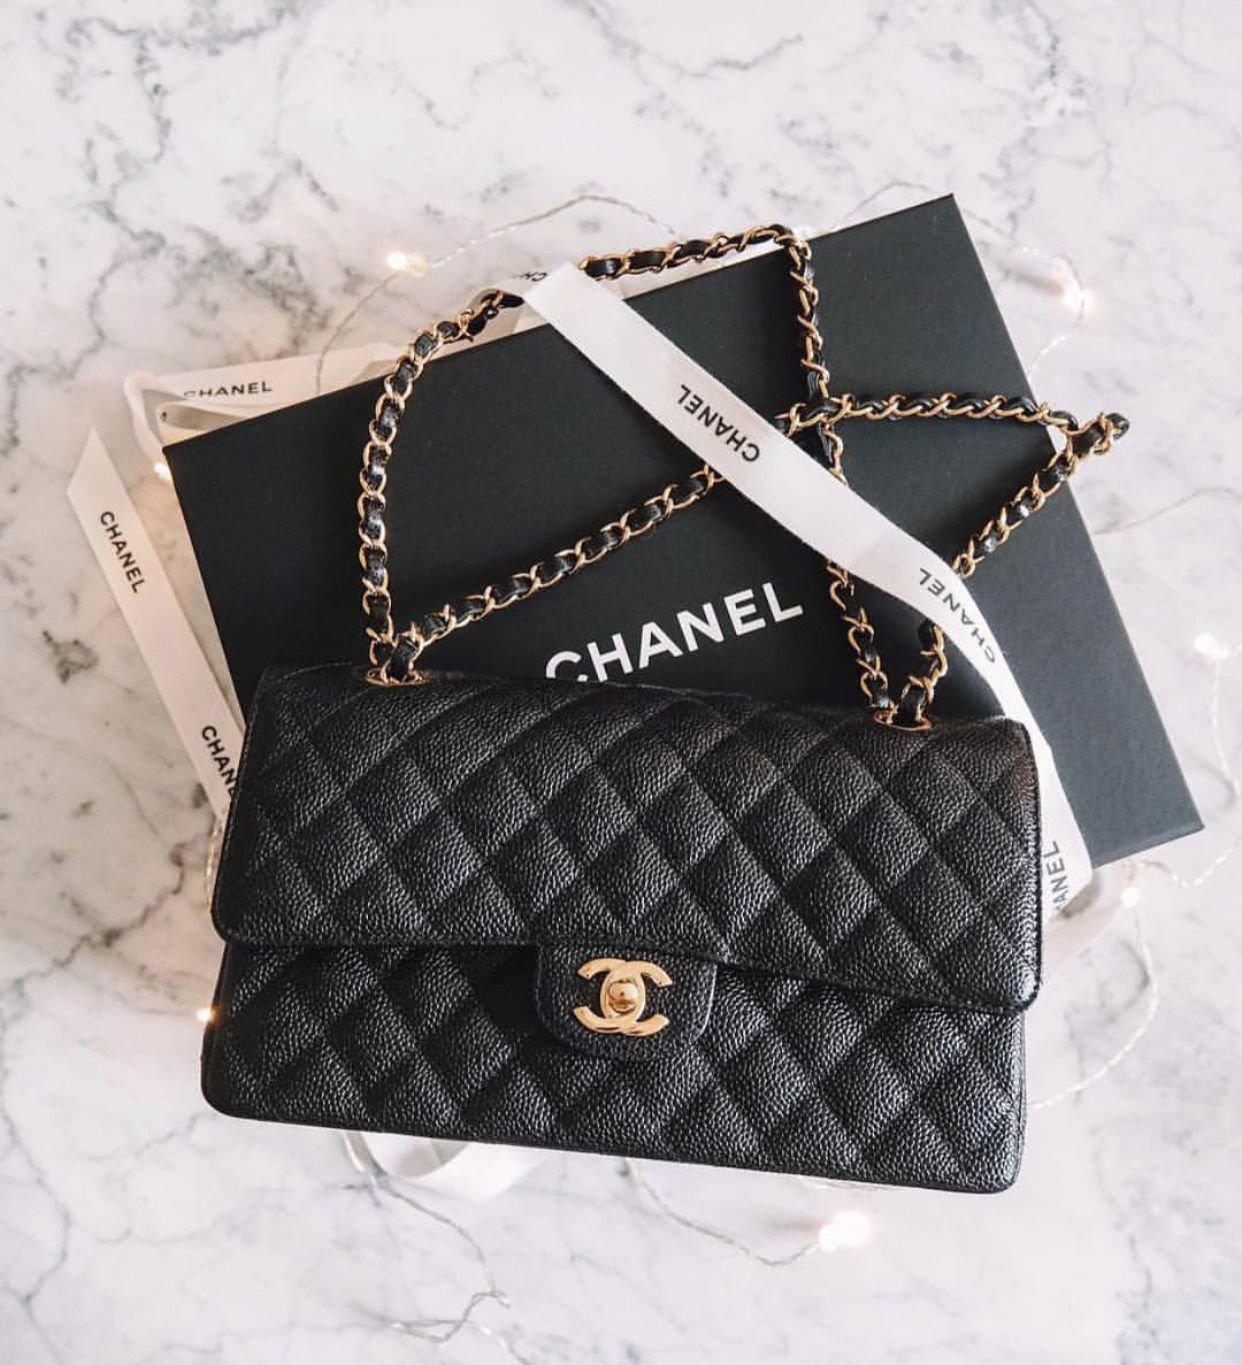 8e69929659ff Chanel Wool with Charms Classic Mini Flap Bag A69900 2018   Chanel   Chanel  bag sale, Bags, Chanel